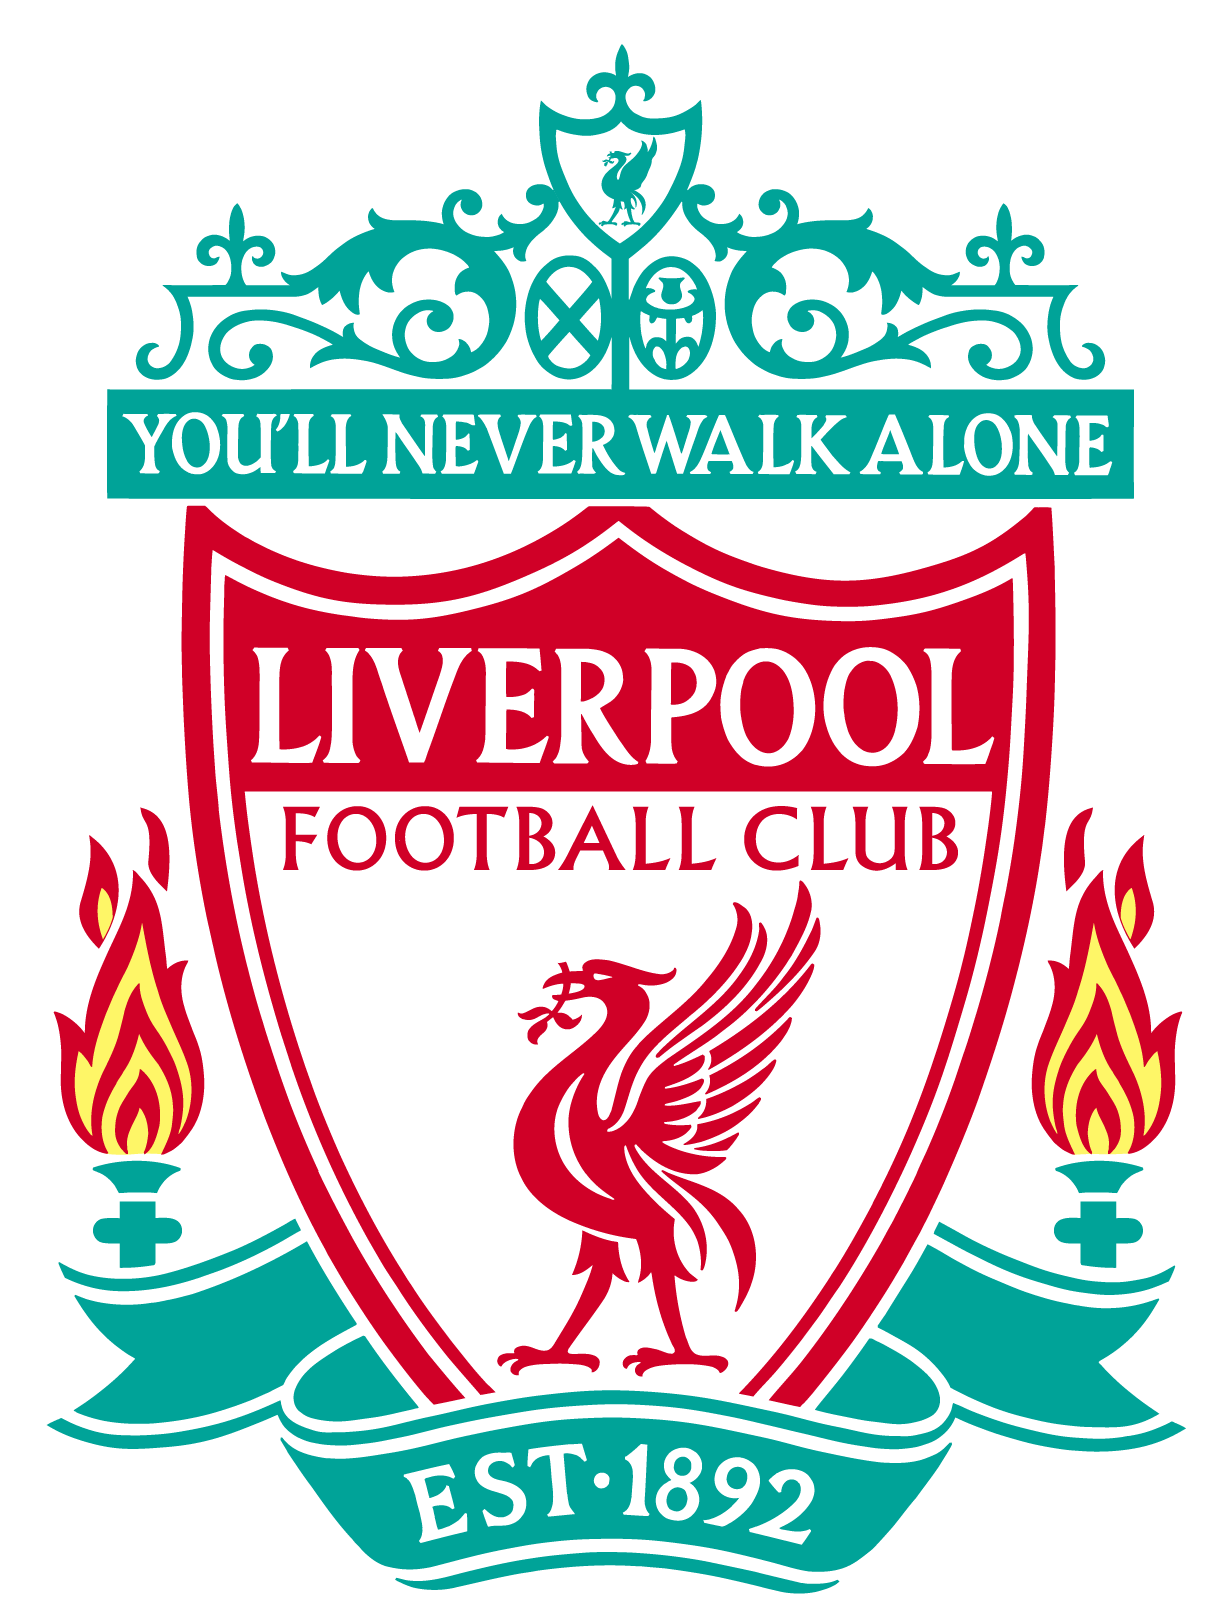 Pin On Liverpool Football Club